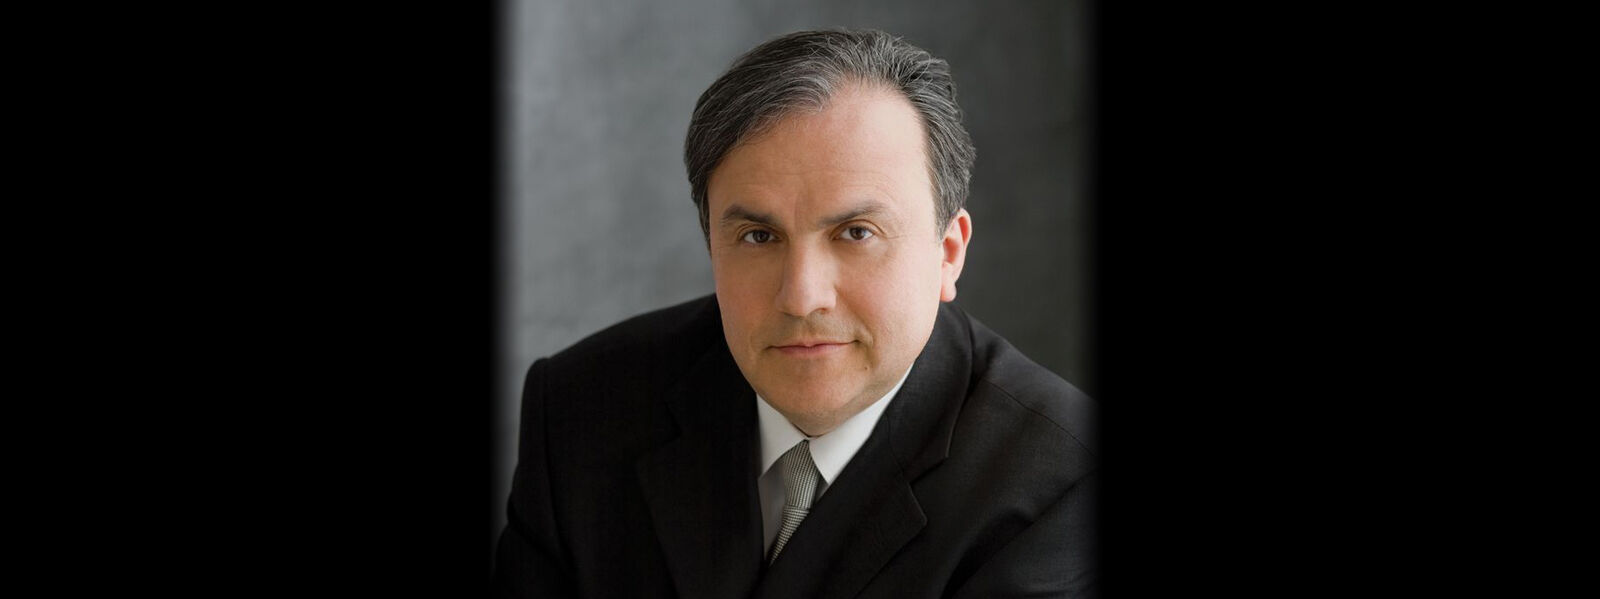 PARKING PASSES ONLY Yefim Bronfman